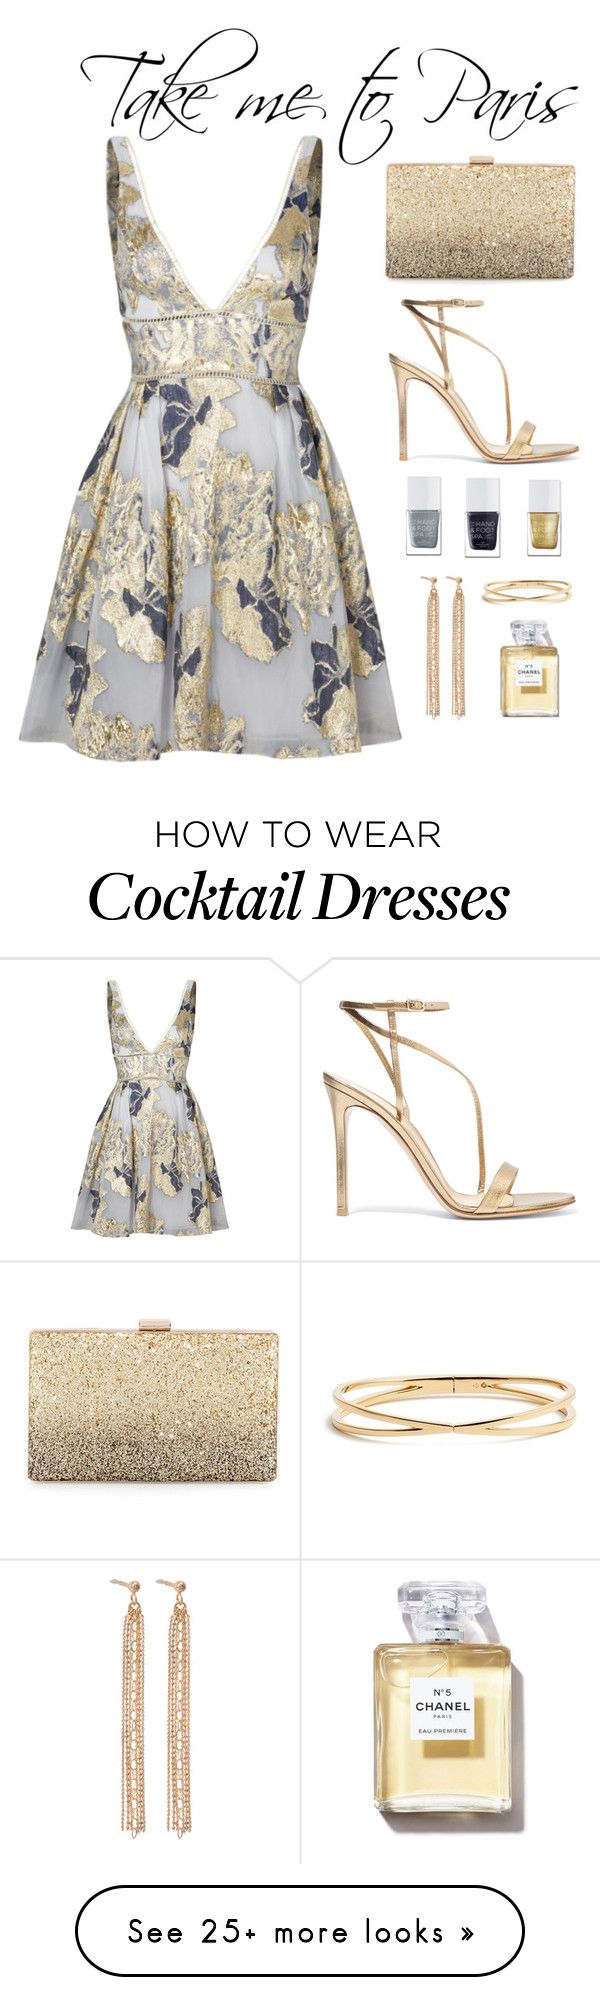 """Untitled #10"" by kell-a on Polyvore featuring Notte by Marchesa, Neiman Marcus, Gianvito Rossi, The Hand & Foot Spa, Aurélie Bidermann and Nadri"